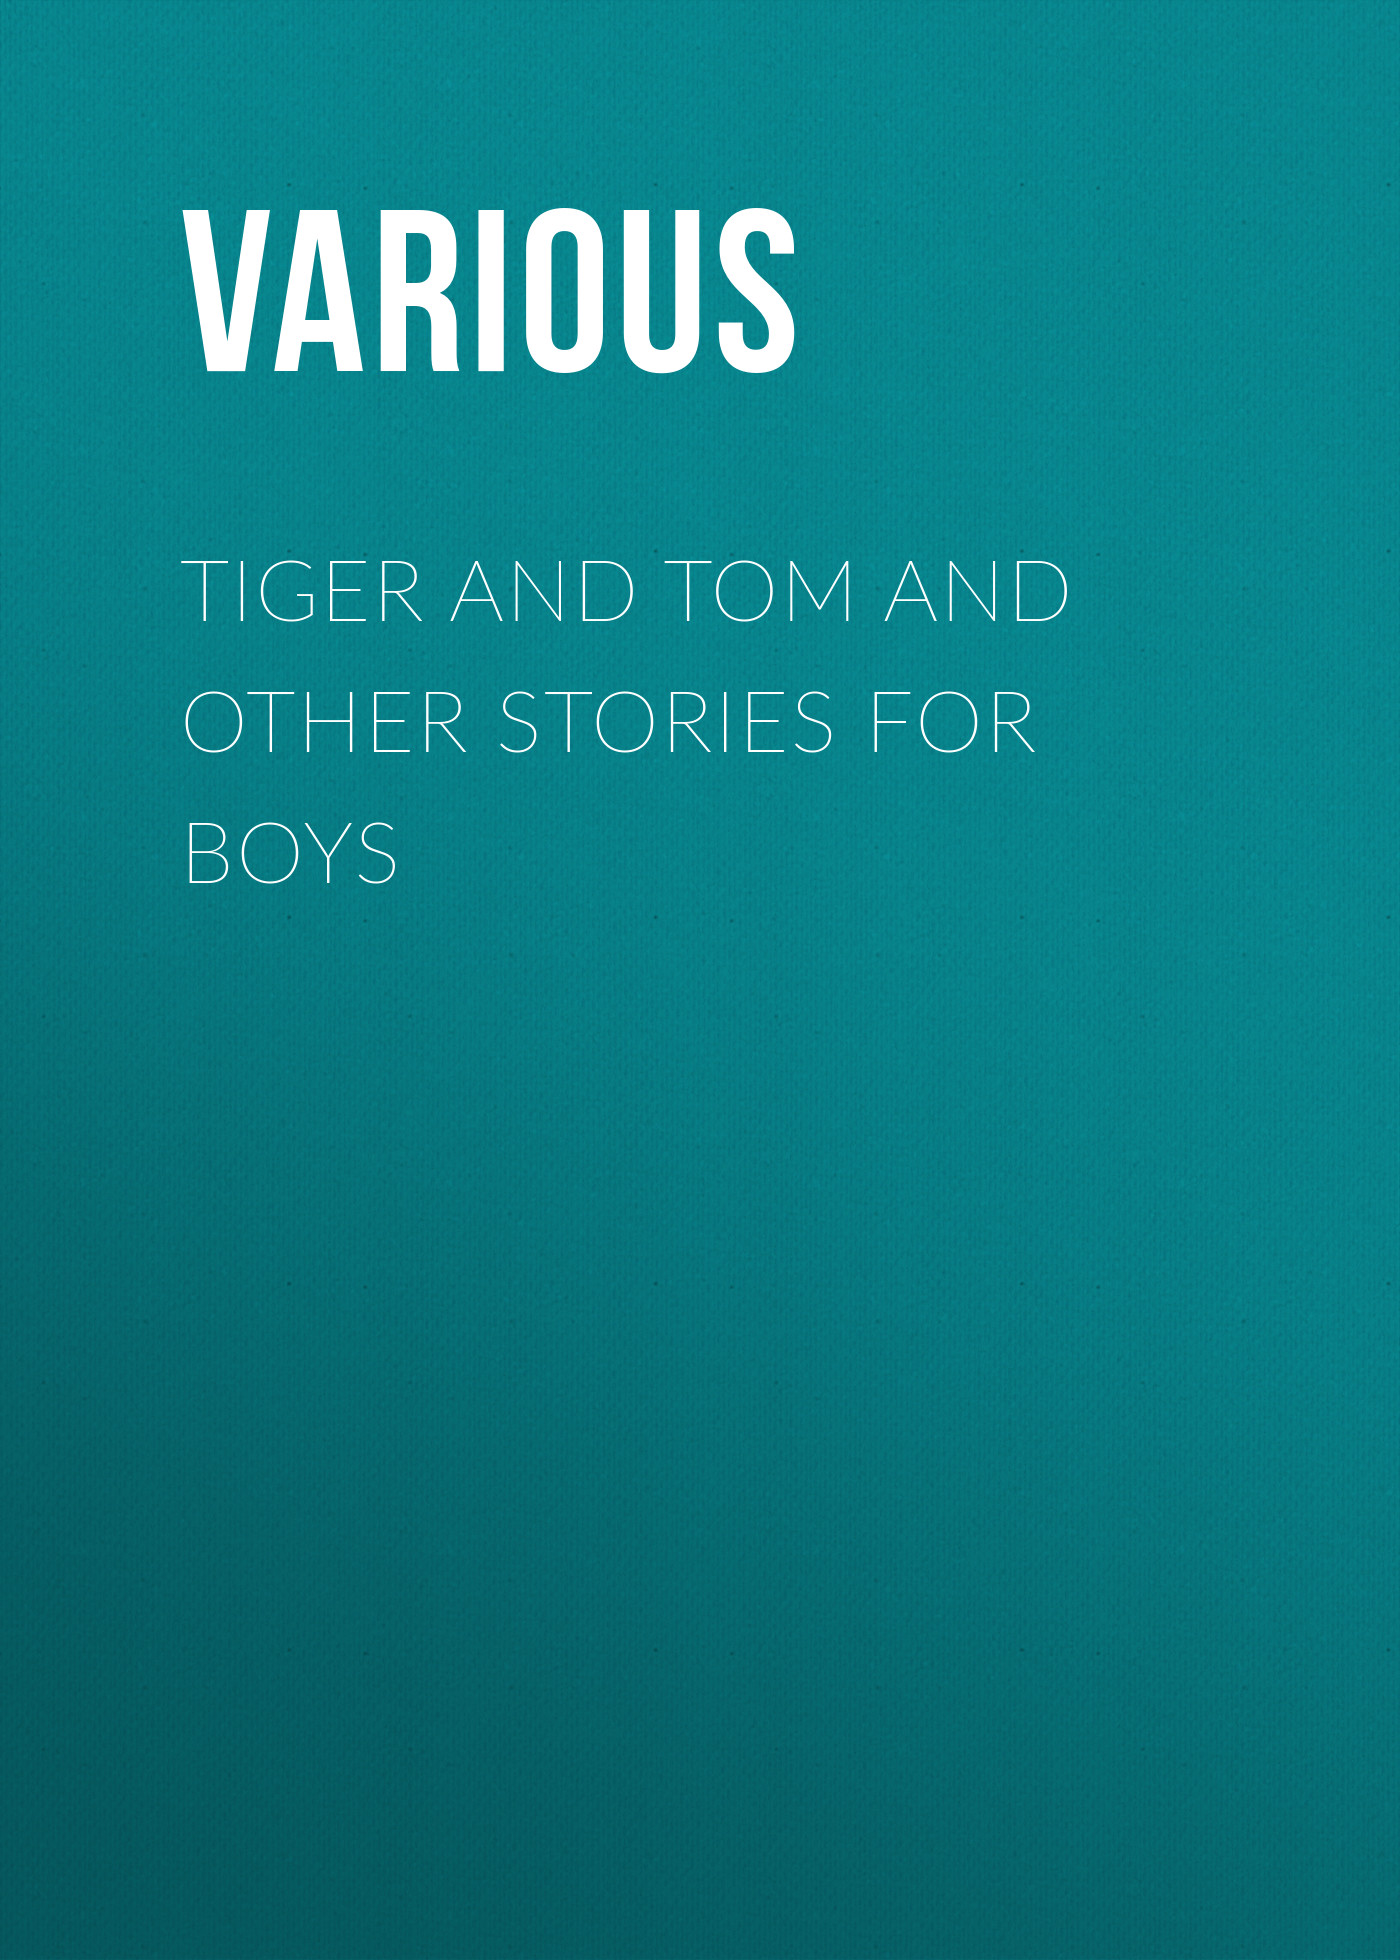 Various Tiger and Tom and Other Stories for Boys